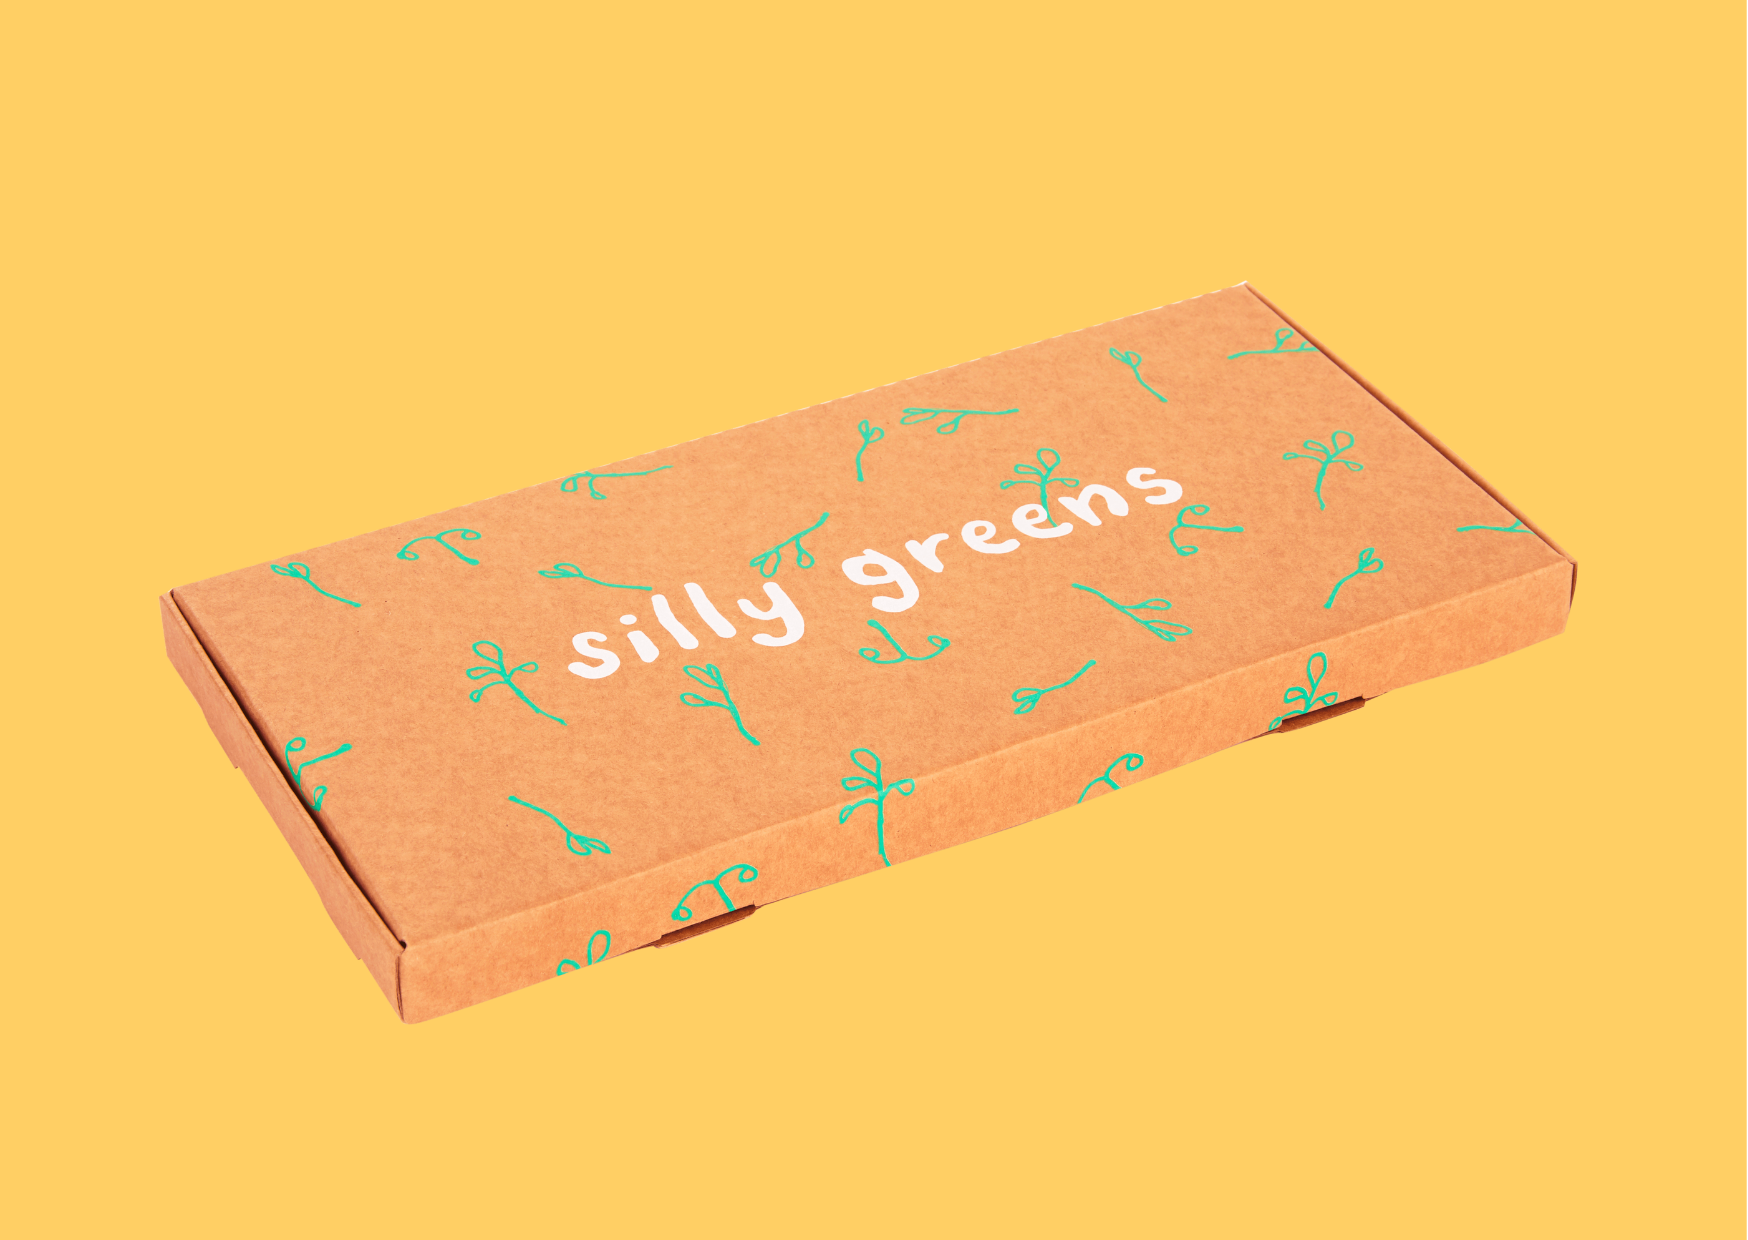 Silly Greens cardboard letterbox grow your own herbs box